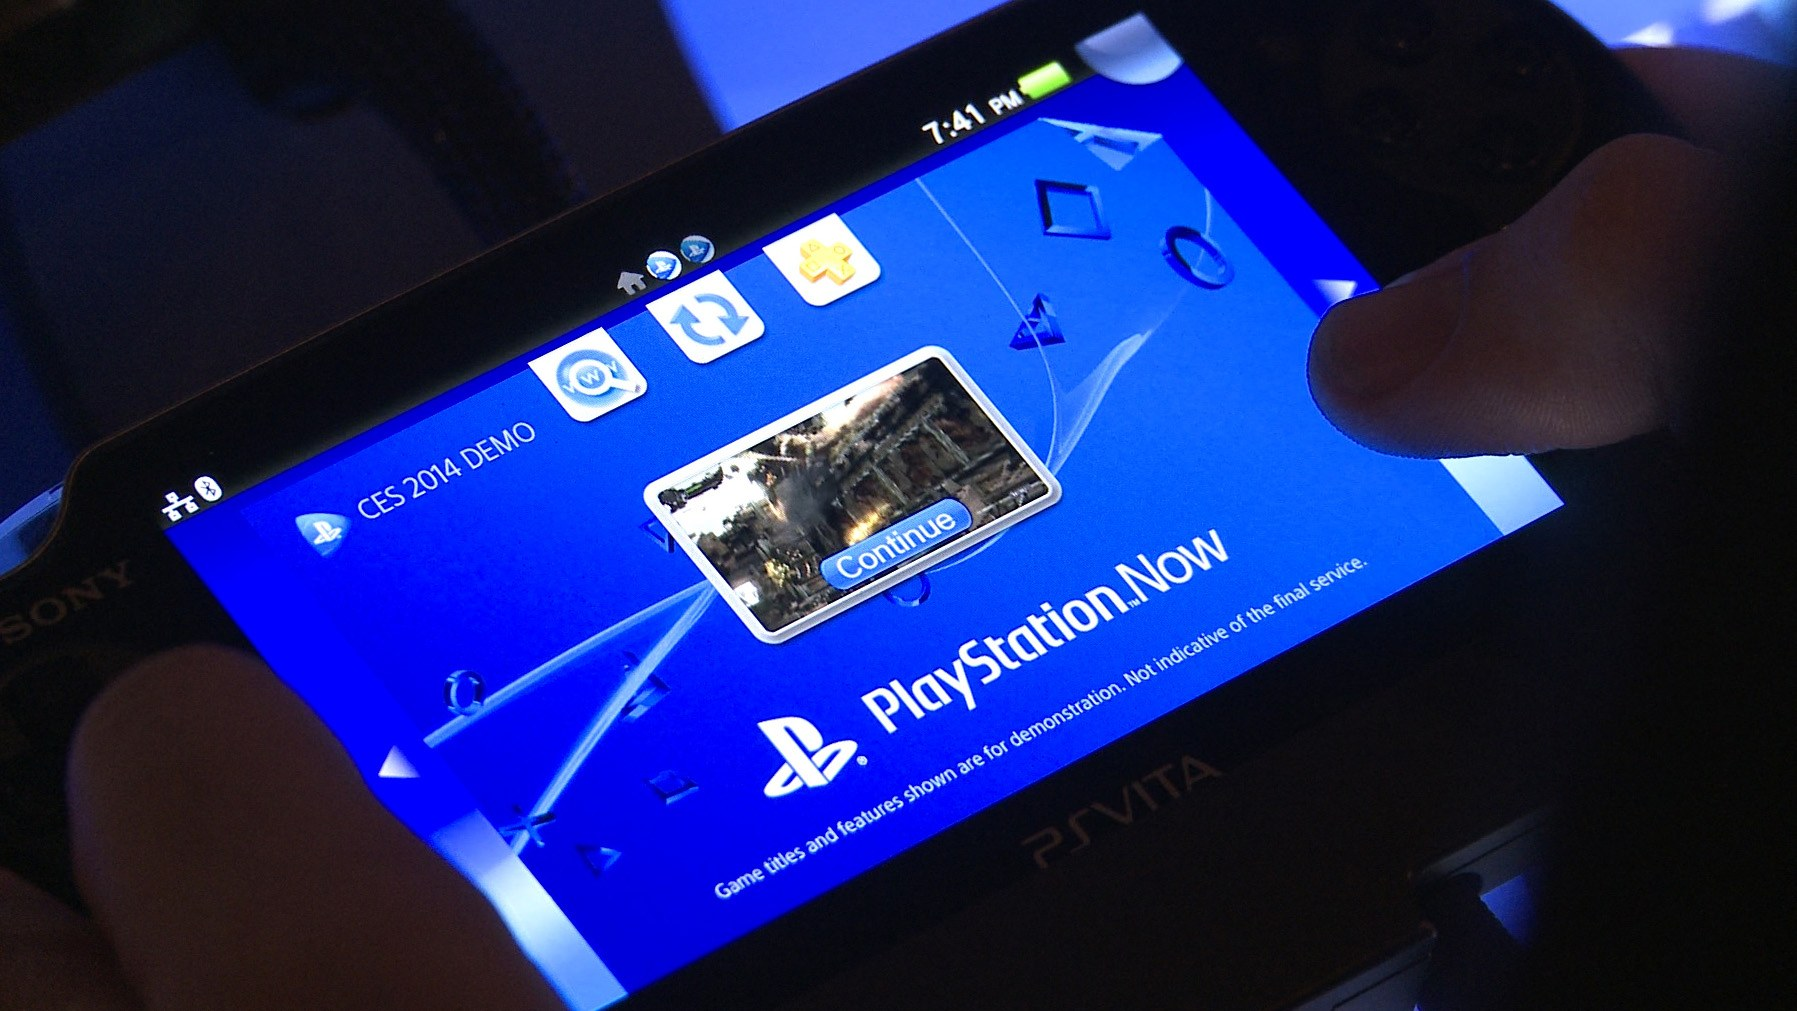 Playstation-Now-ps-vita